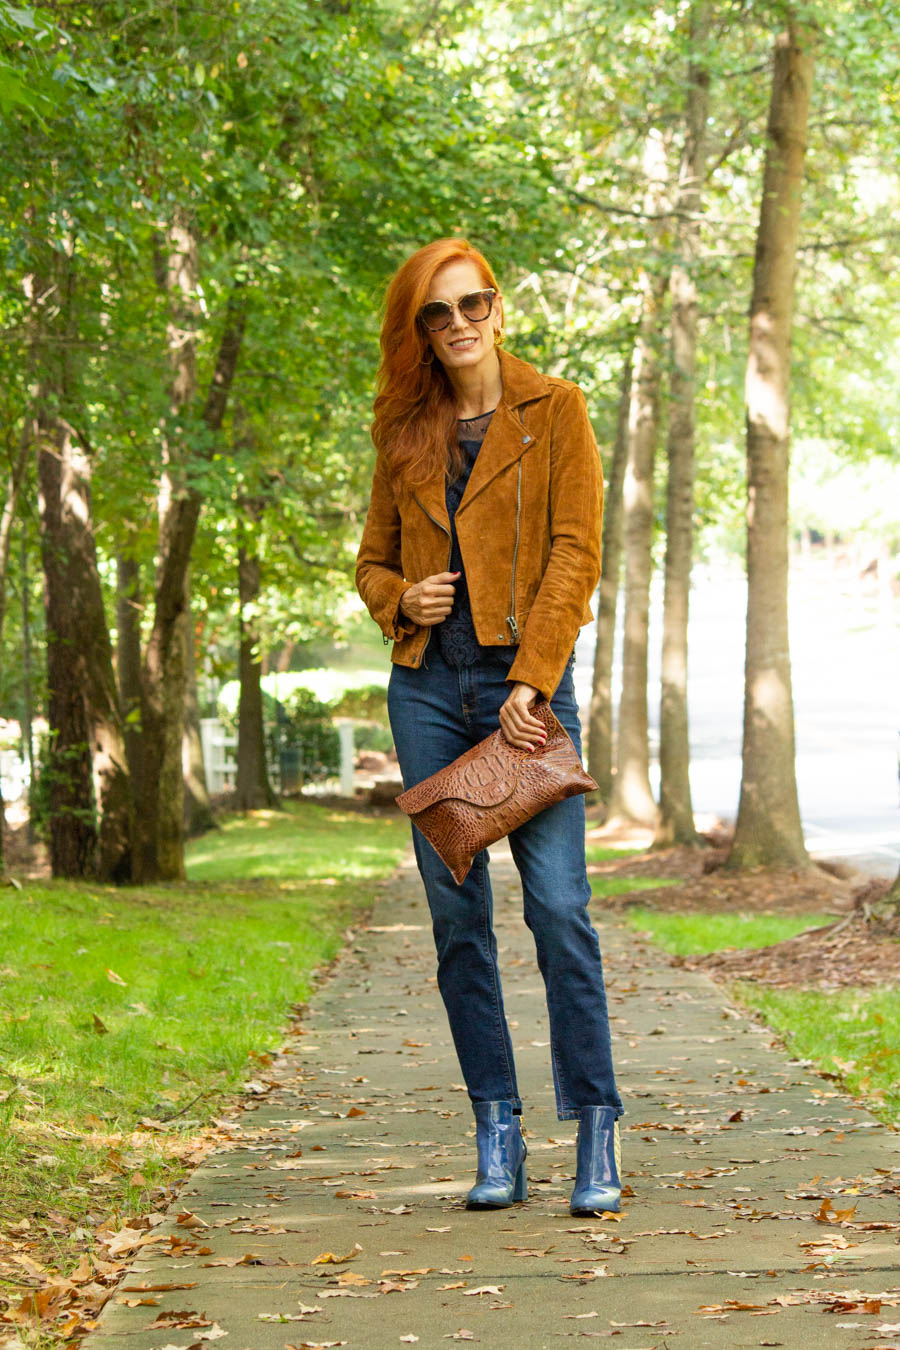 moon d'elle Luxury Italian boots with jeans, leather clutch, lace top and suede brown jacket